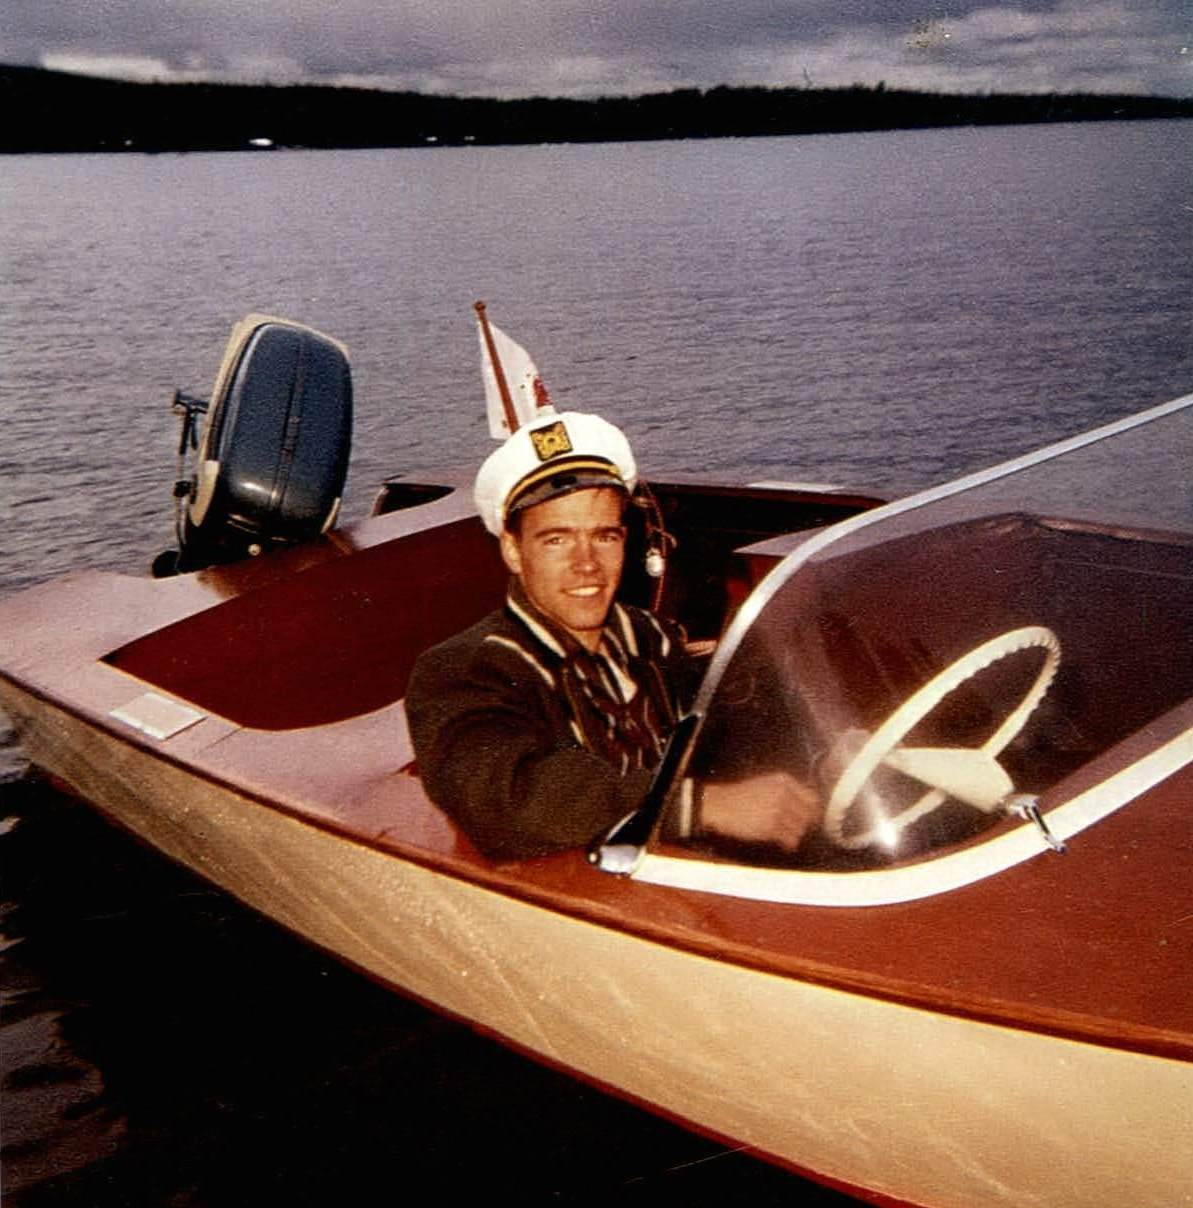 1959 Alan Richardson at Harding Lake in boat he built from a kit purchased through Sears.